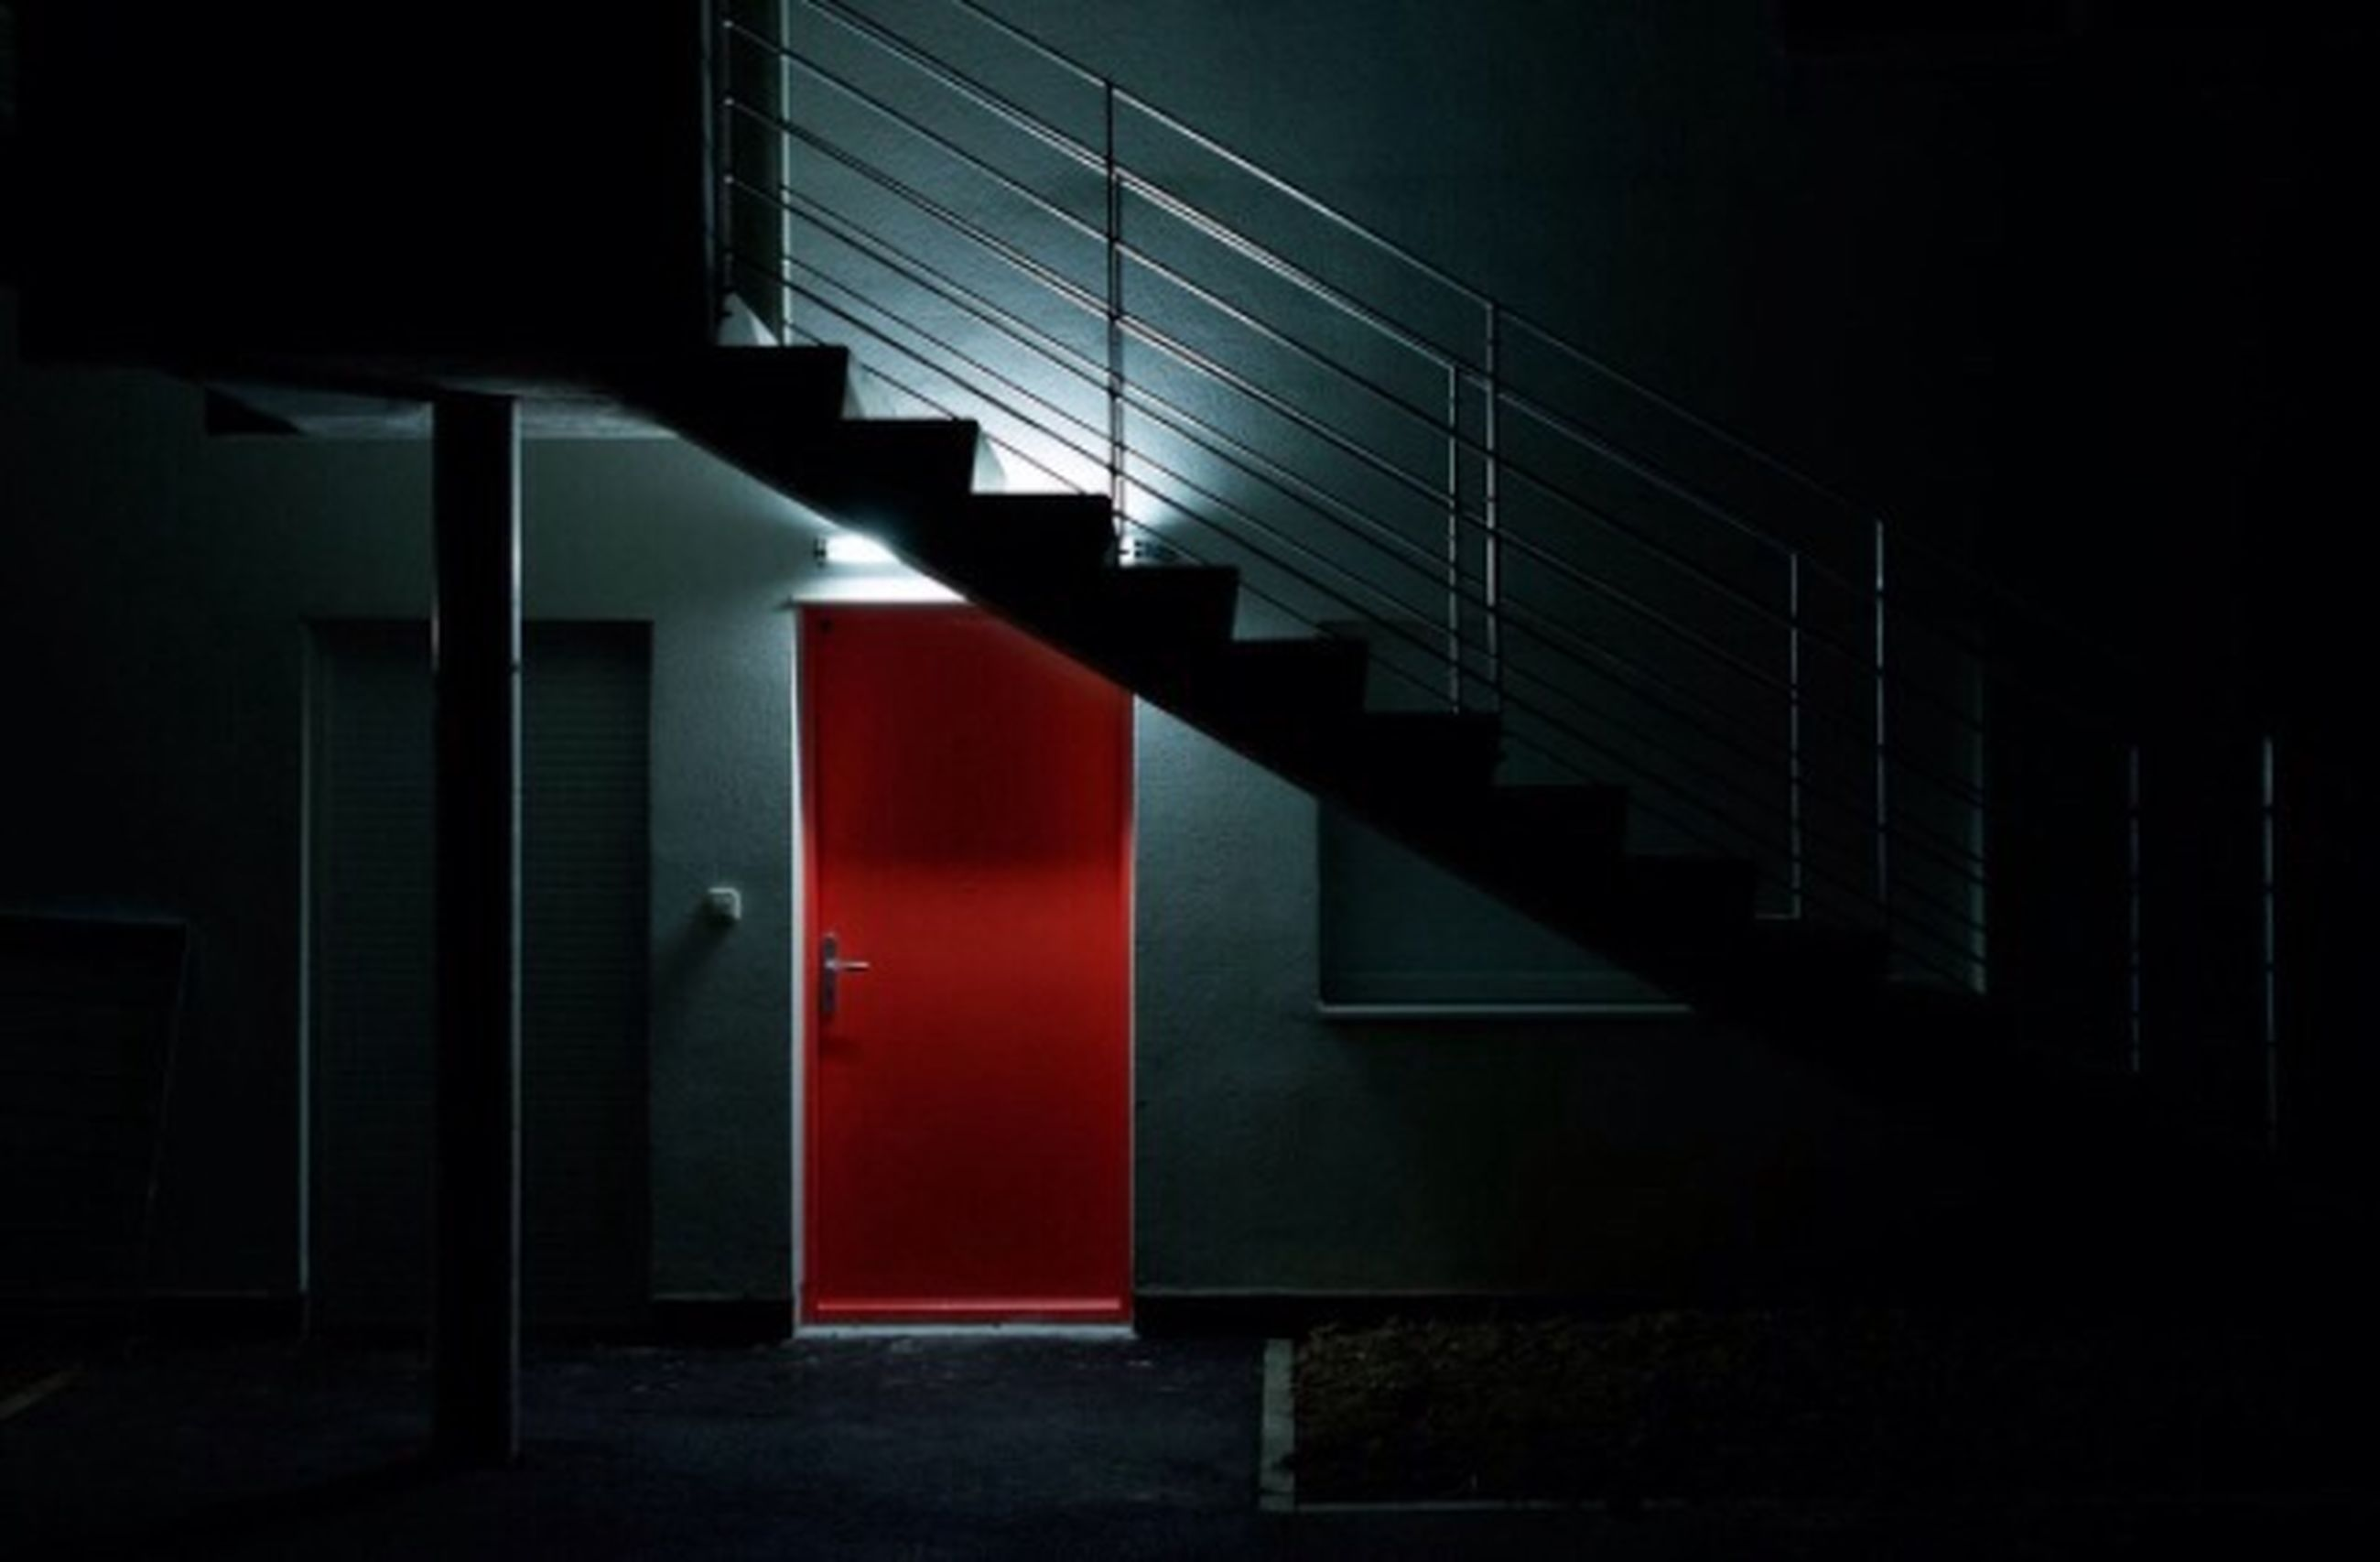 indoors, red, architecture, built structure, steps, railing, staircase, in a row, no people, empty, absence, steps and staircases, illuminated, window, wall - building feature, building, modern, wall, shadow, sunlight